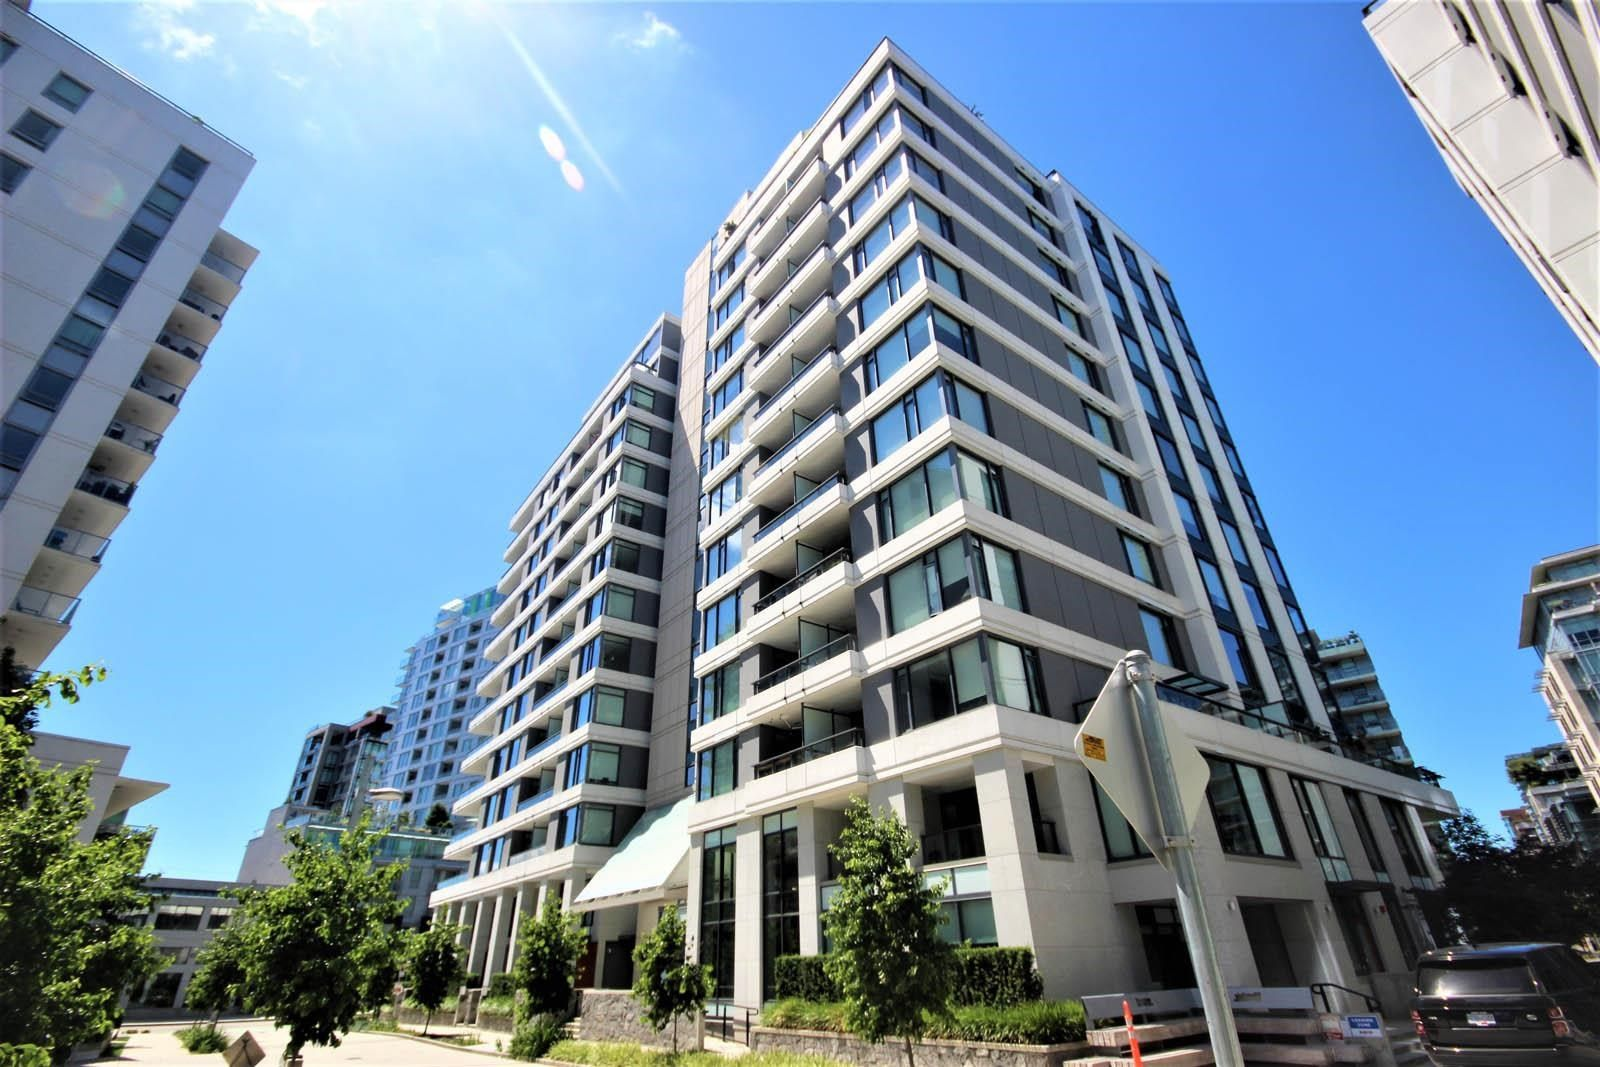 """Main Photo: 601 1688 PULLMAN PORTER Street in Vancouver: Mount Pleasant VE Condo for sale in """"NAVIO"""" (Vancouver East)  : MLS®# R2595723"""